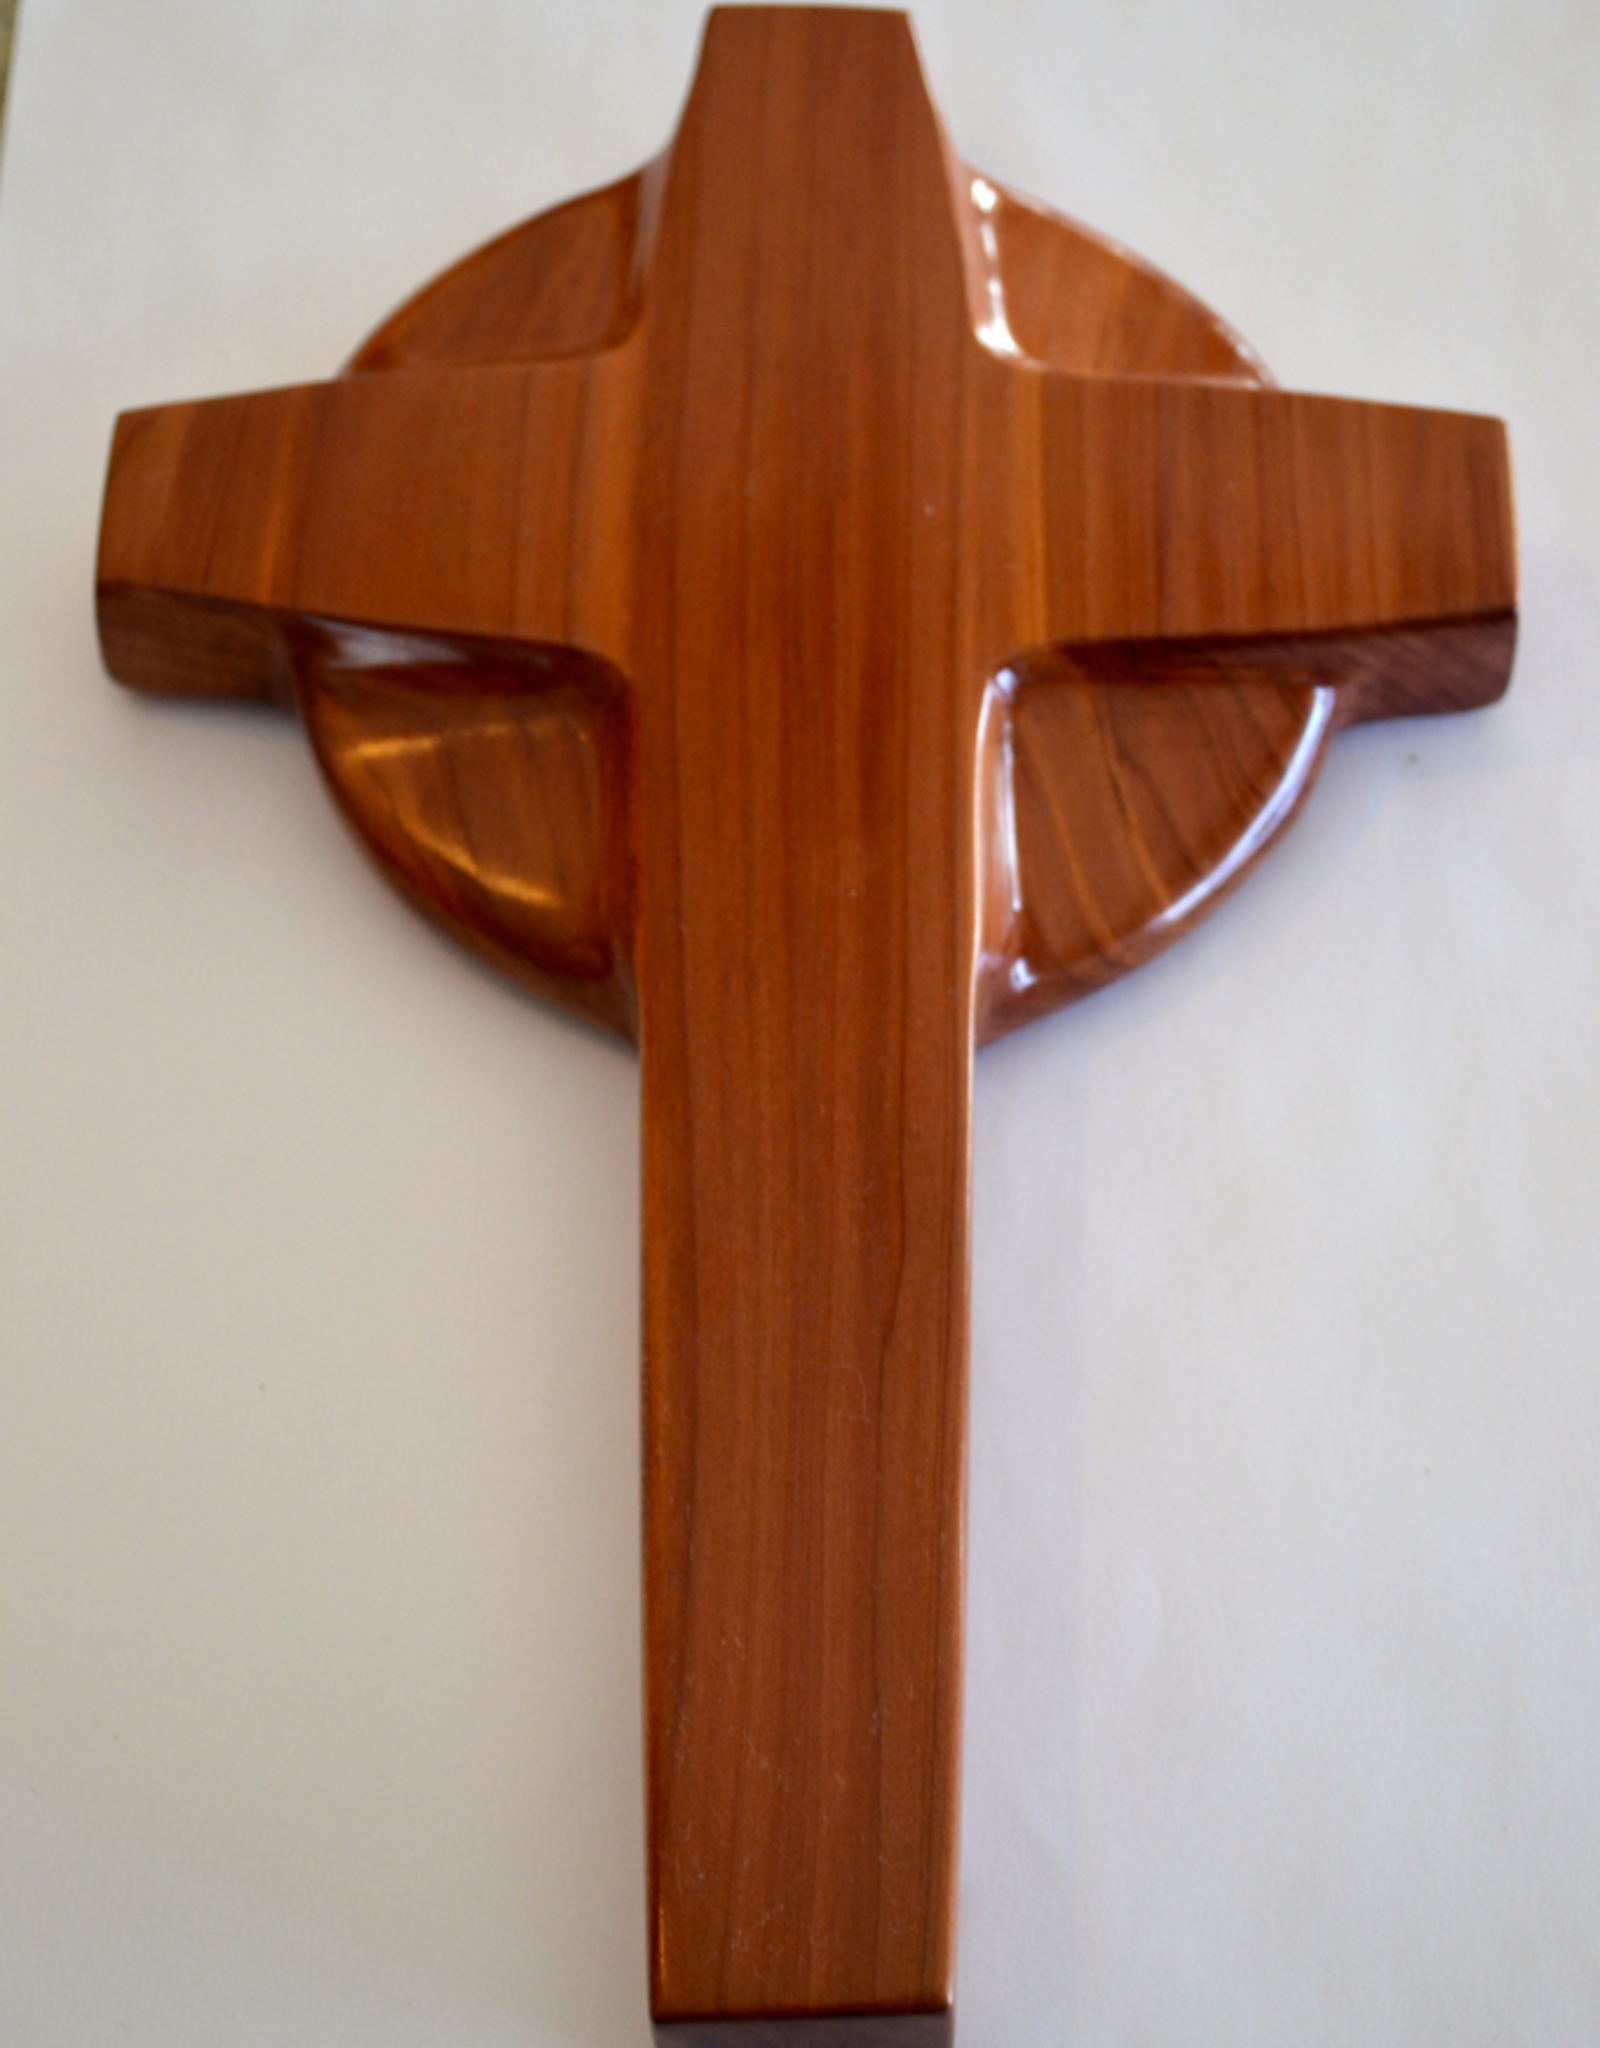 "Merry Crosses 10"" Merry Handcrafted Aromatic Cedar Celtic Wall Cross"